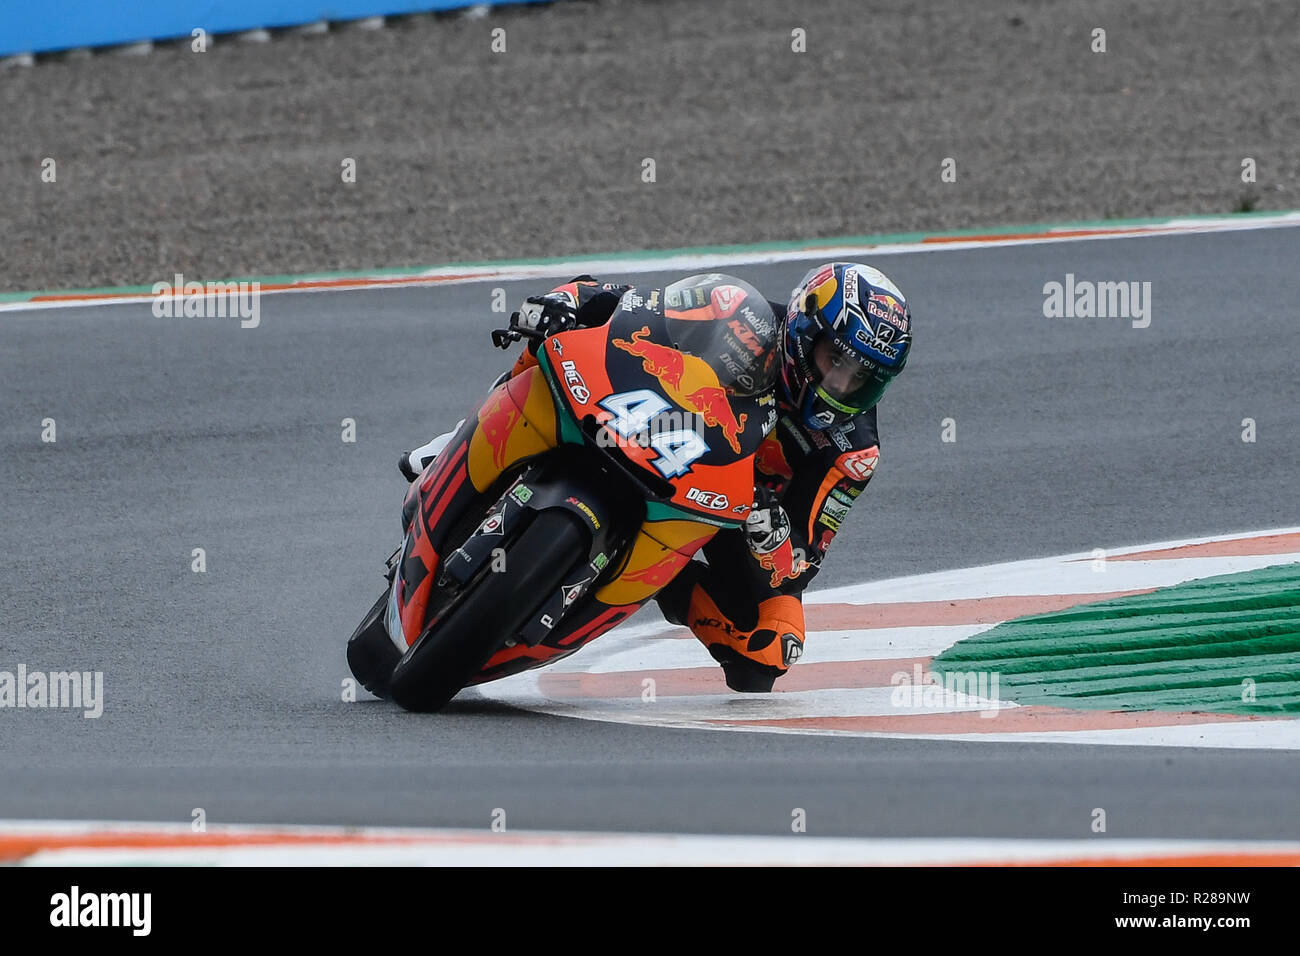 Circuit de Valencia, Valencia, Spain. 17th November 2018.  MotoGP of Valencia, qualification; Moto 2 rider Miguel Olivera (KTM RedBull) during qualifying sessions Credit: Action Plus Sports/Alamy Live News - Stock Image